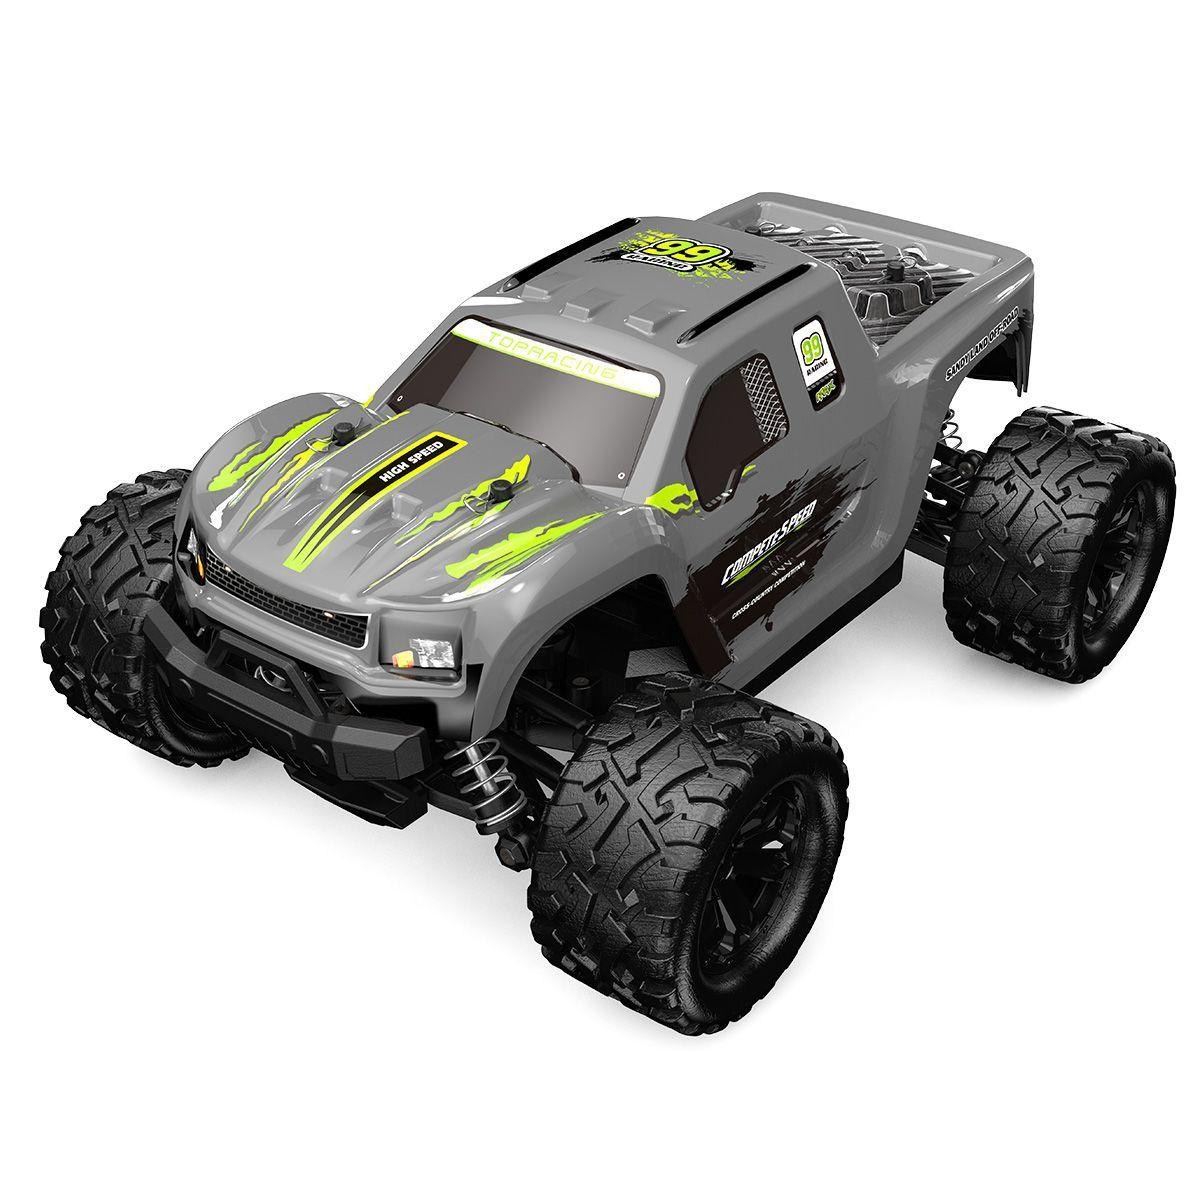 40km/h RC car 1:18 off-road racing 2.4G High-speed Drifting Stunt Cars 4 Drives Remote control car 2021 sell